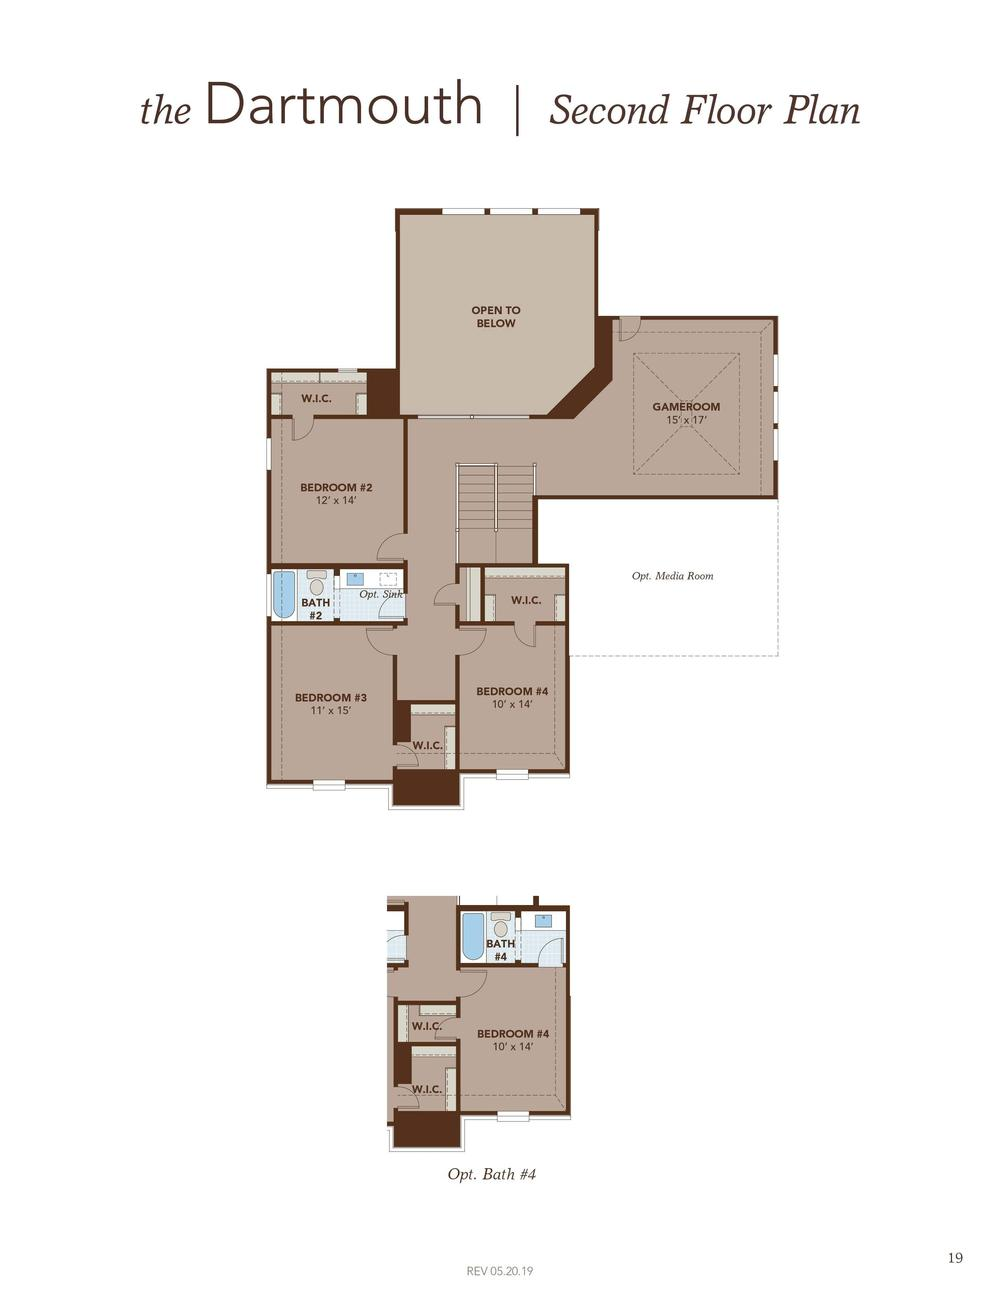 Dartmouth Second Floor Plan